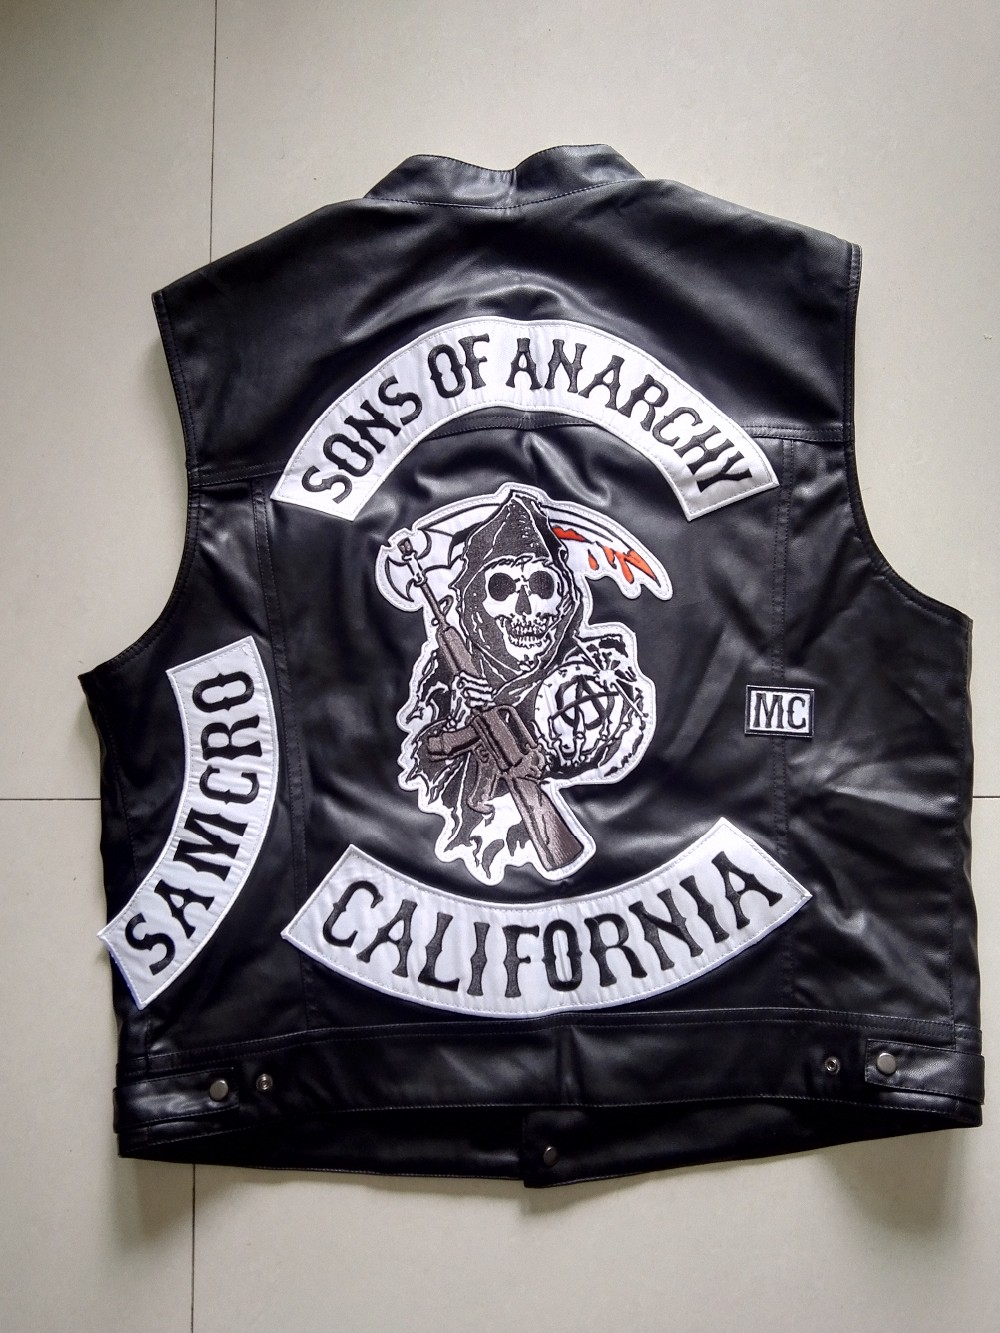 Biker Vest Patches >> Sons Of Anarchy Cut Vest | www.imgkid.com - The Image Kid Has It!